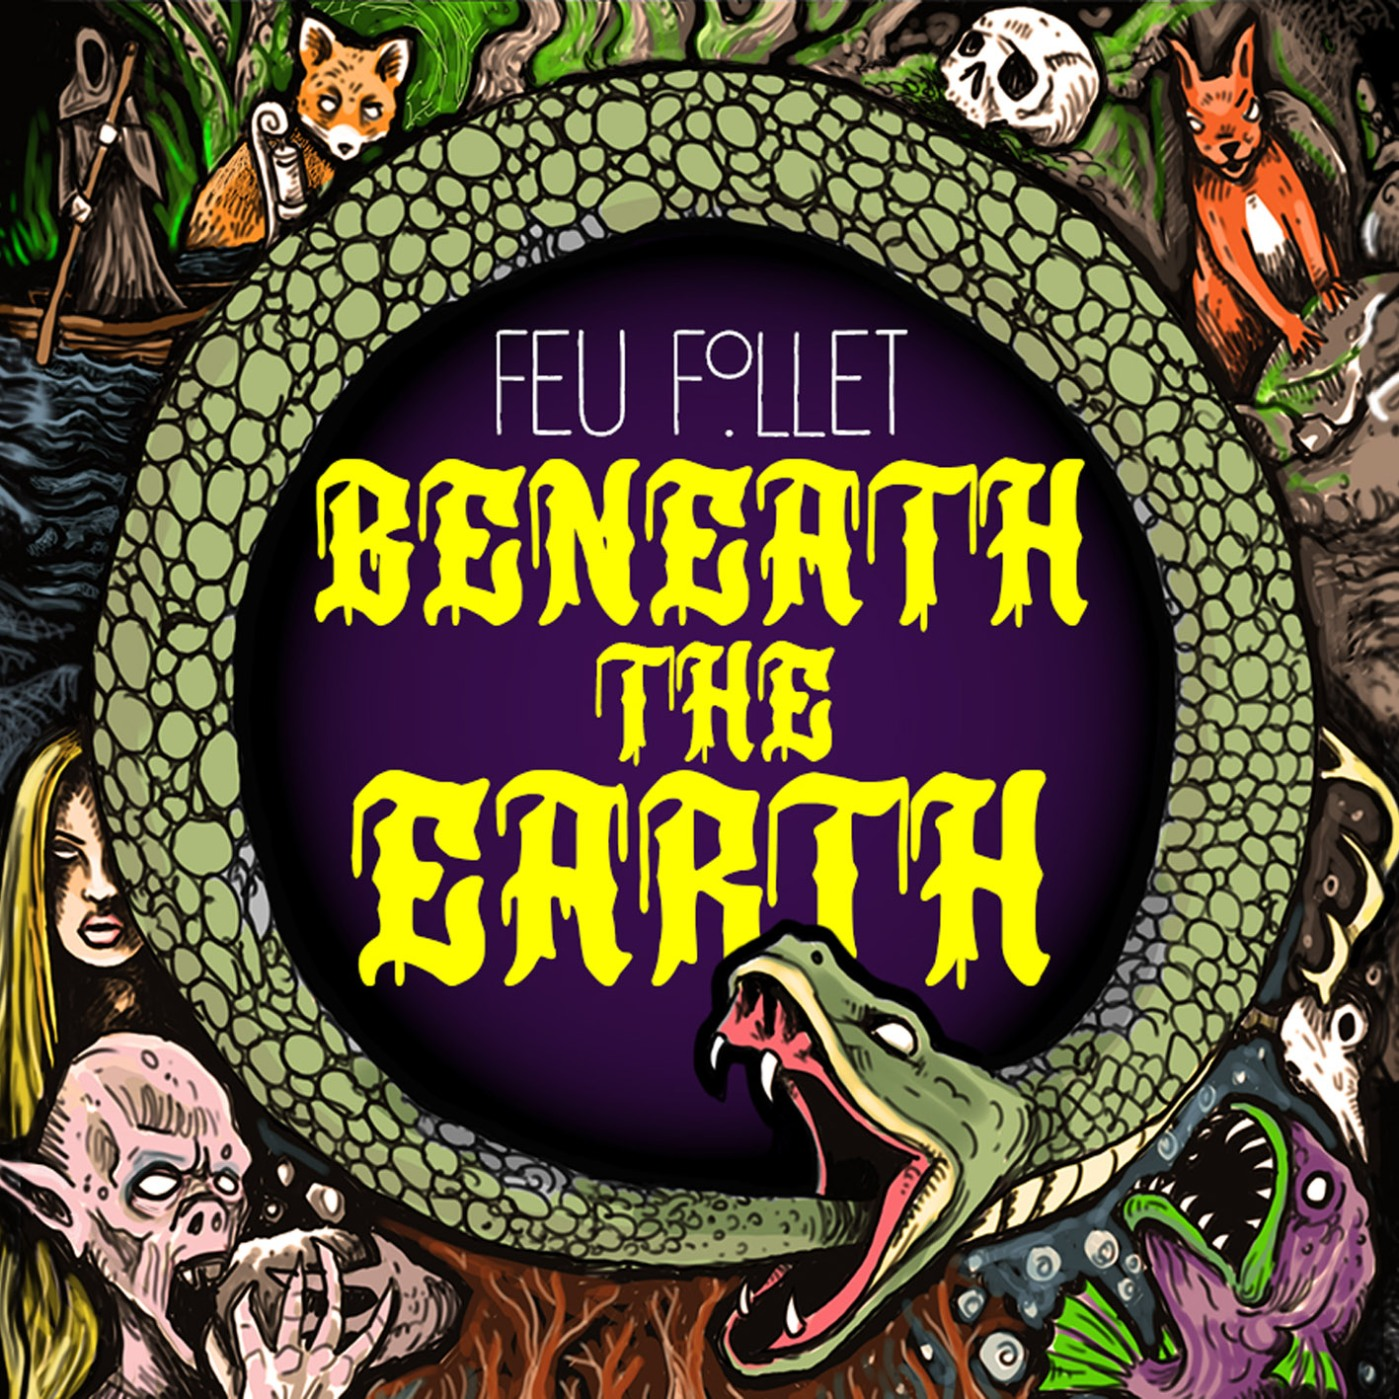 Feu Follet - Beneath The Earth (LP, 2021)